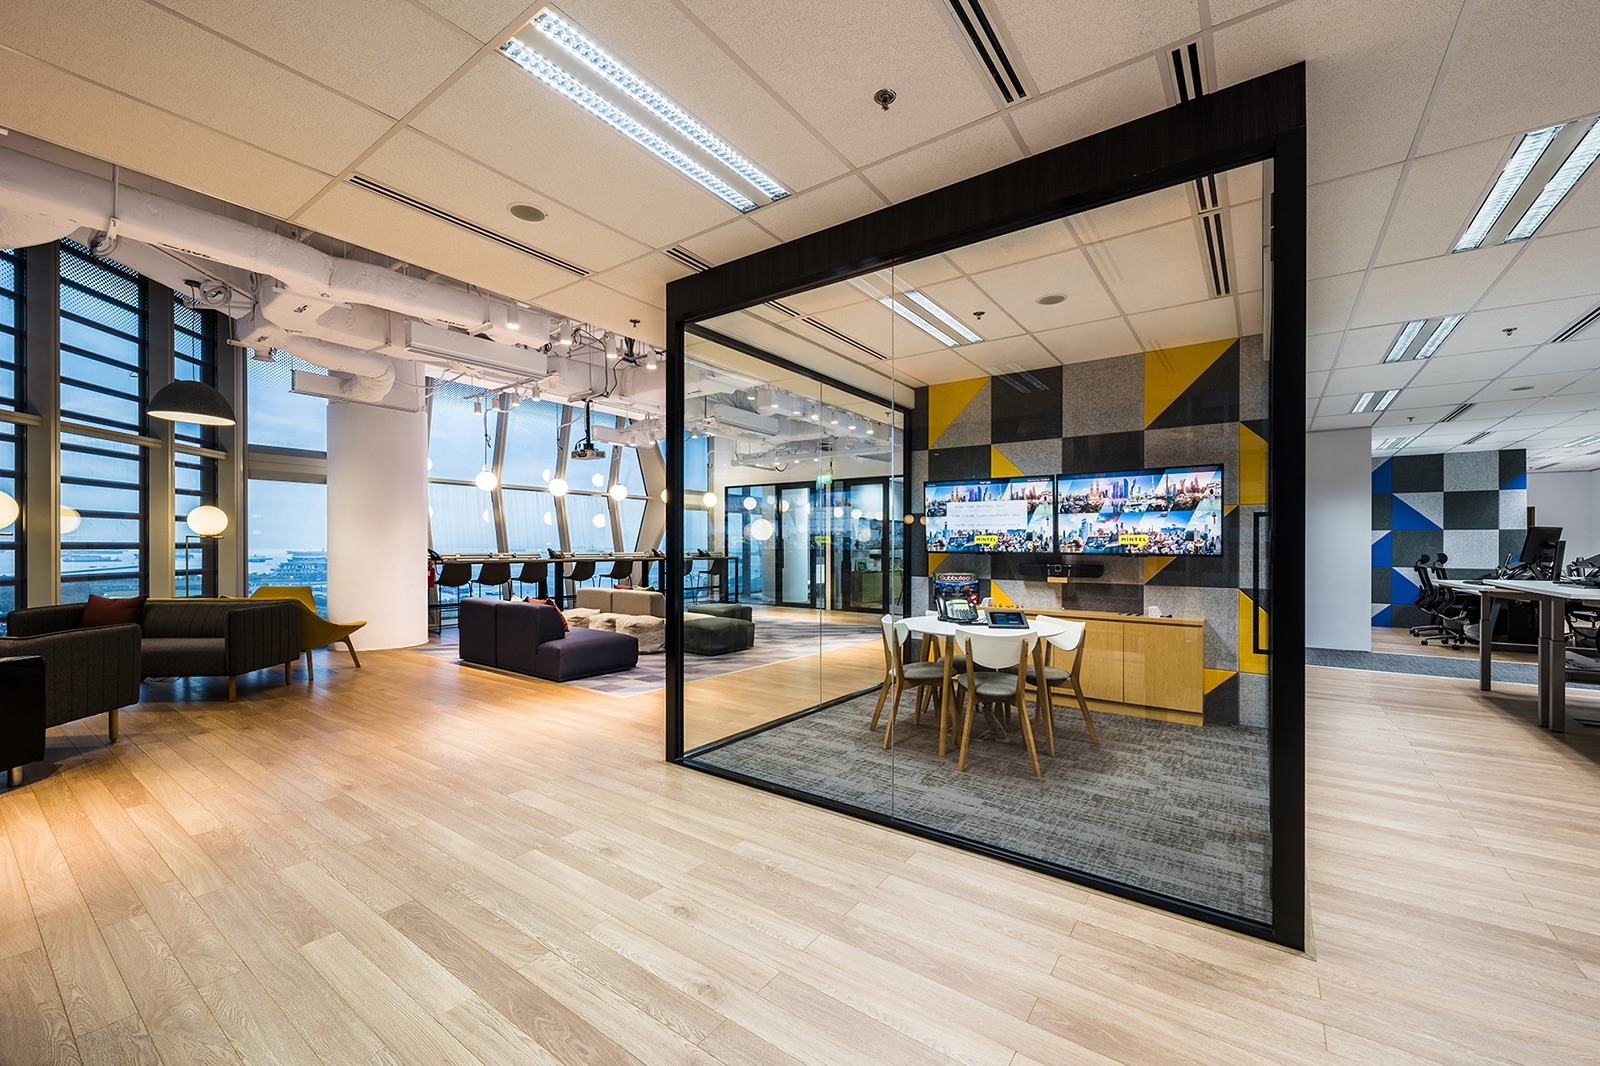 A Look Inside Mintel's Singapore Office